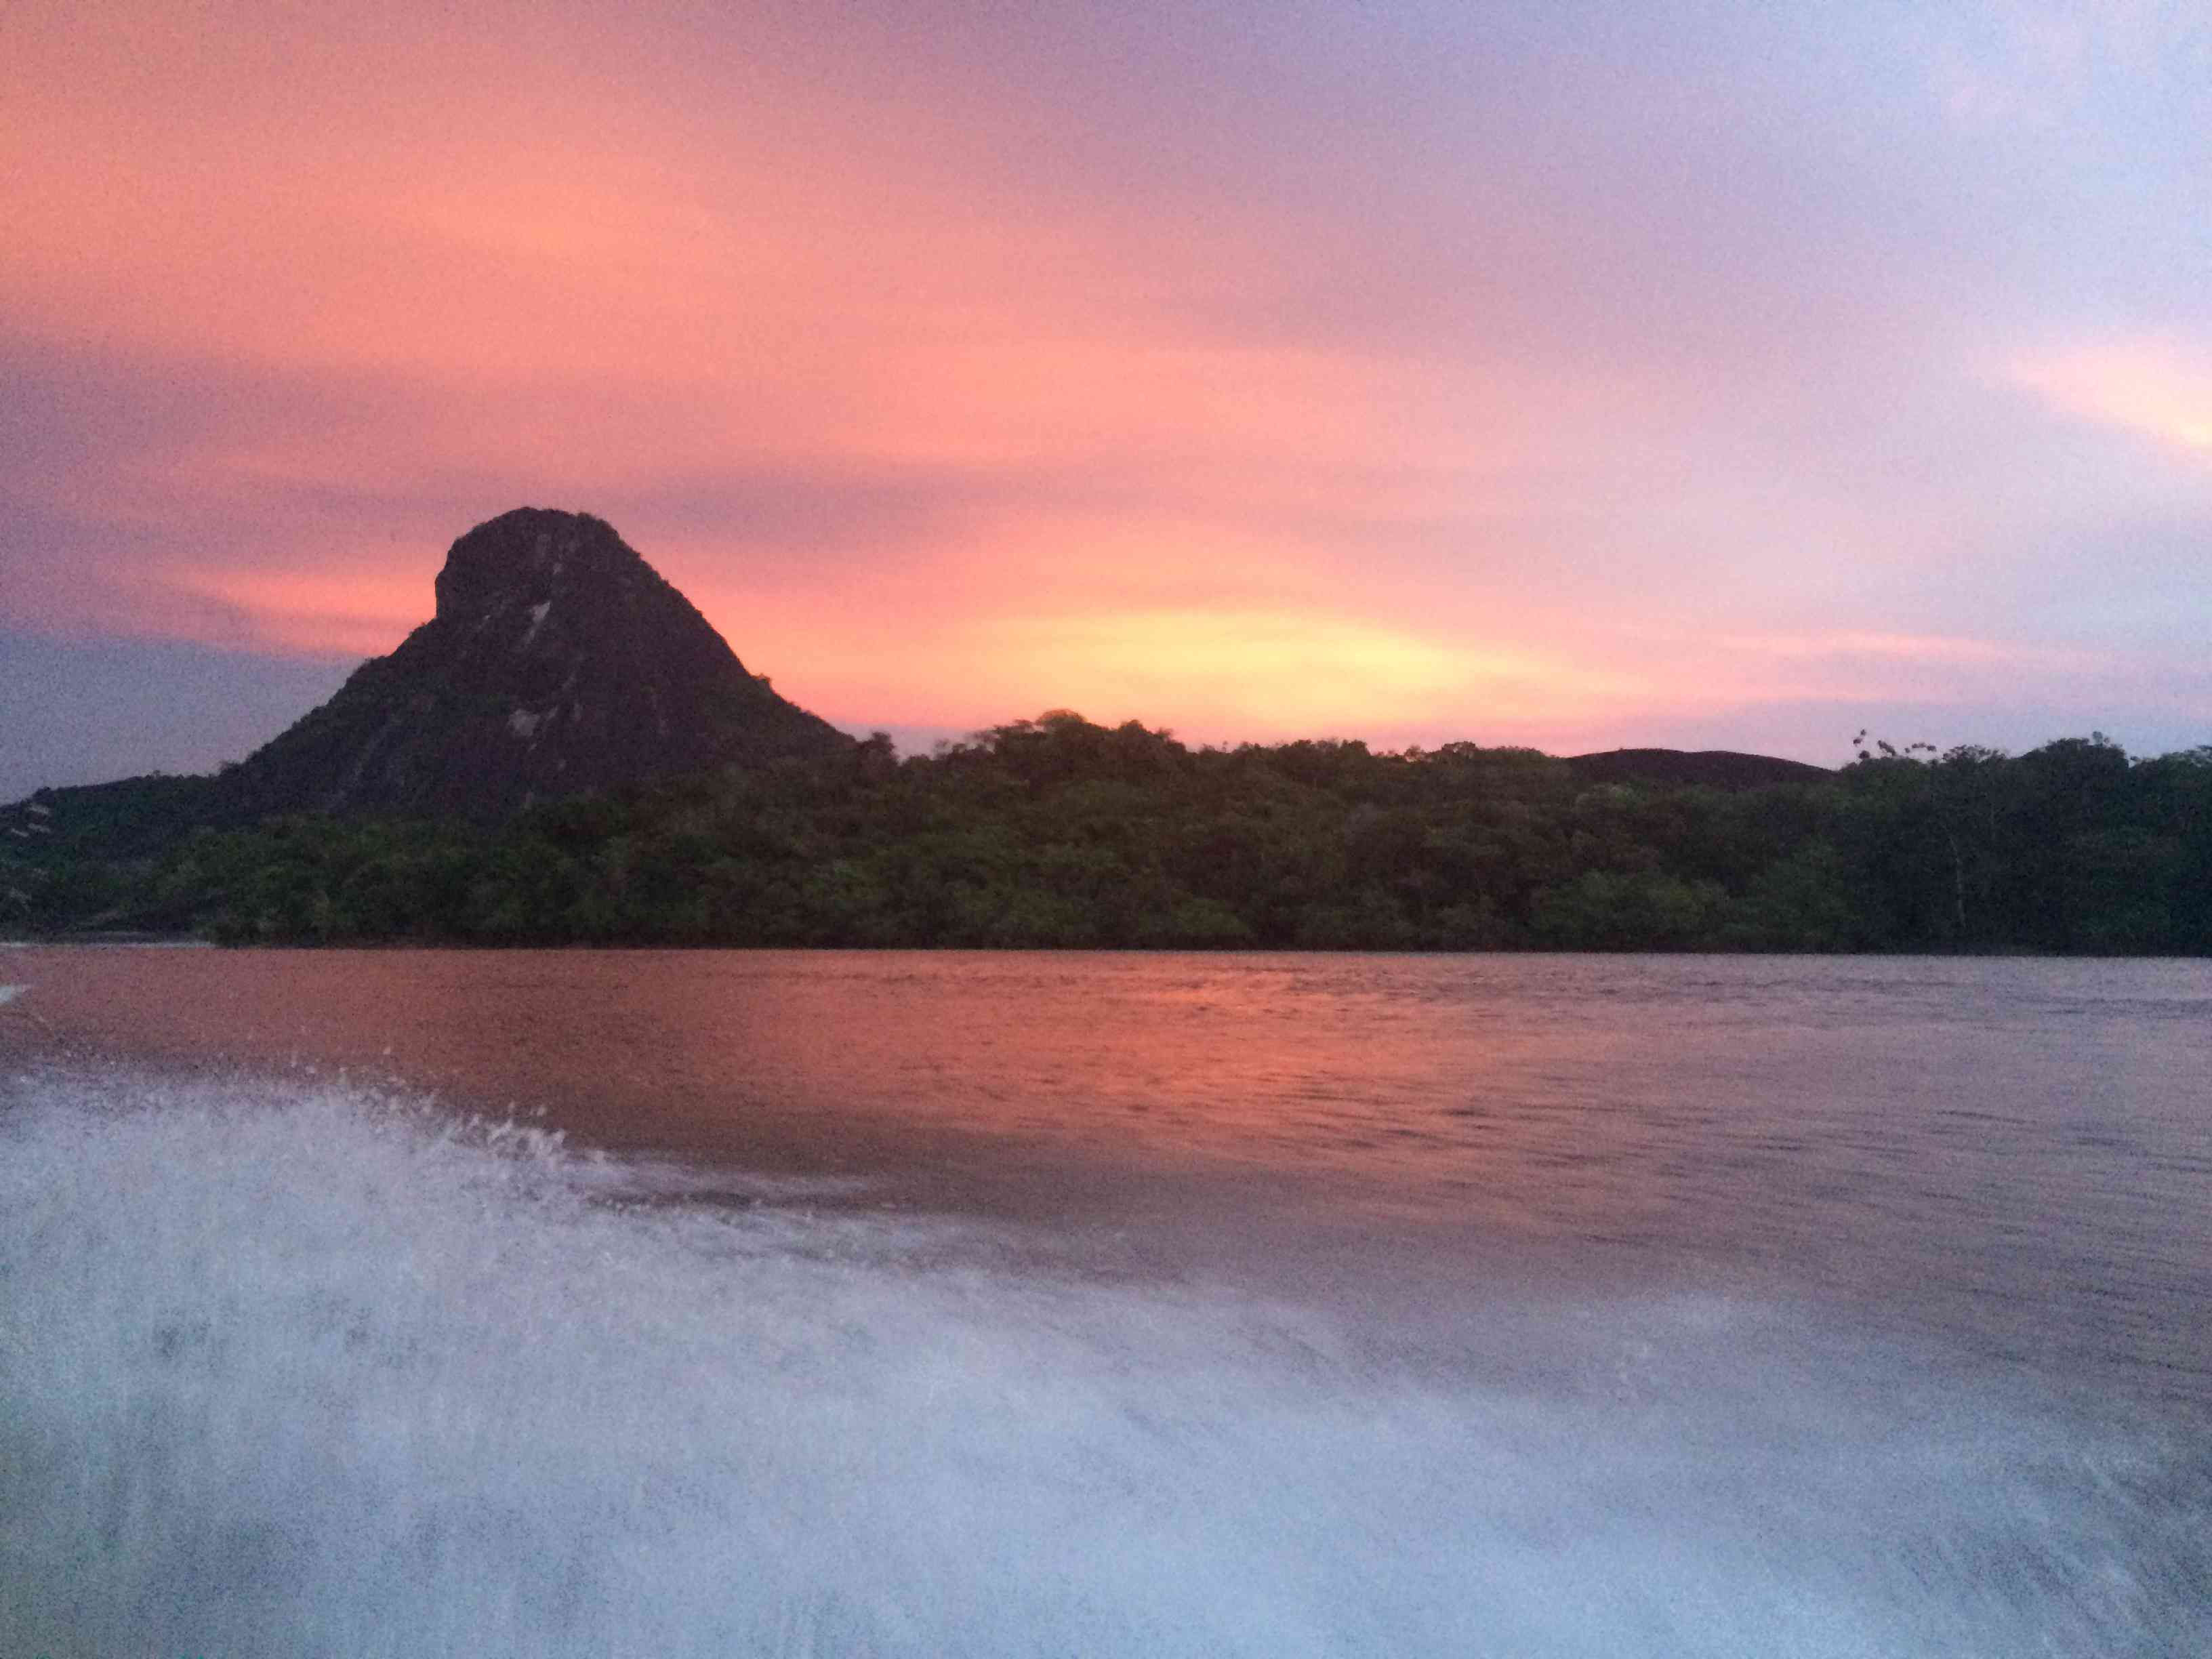 Guiana Shield rock formation in the Amazon rainforest at sunset from the Orinoco river.